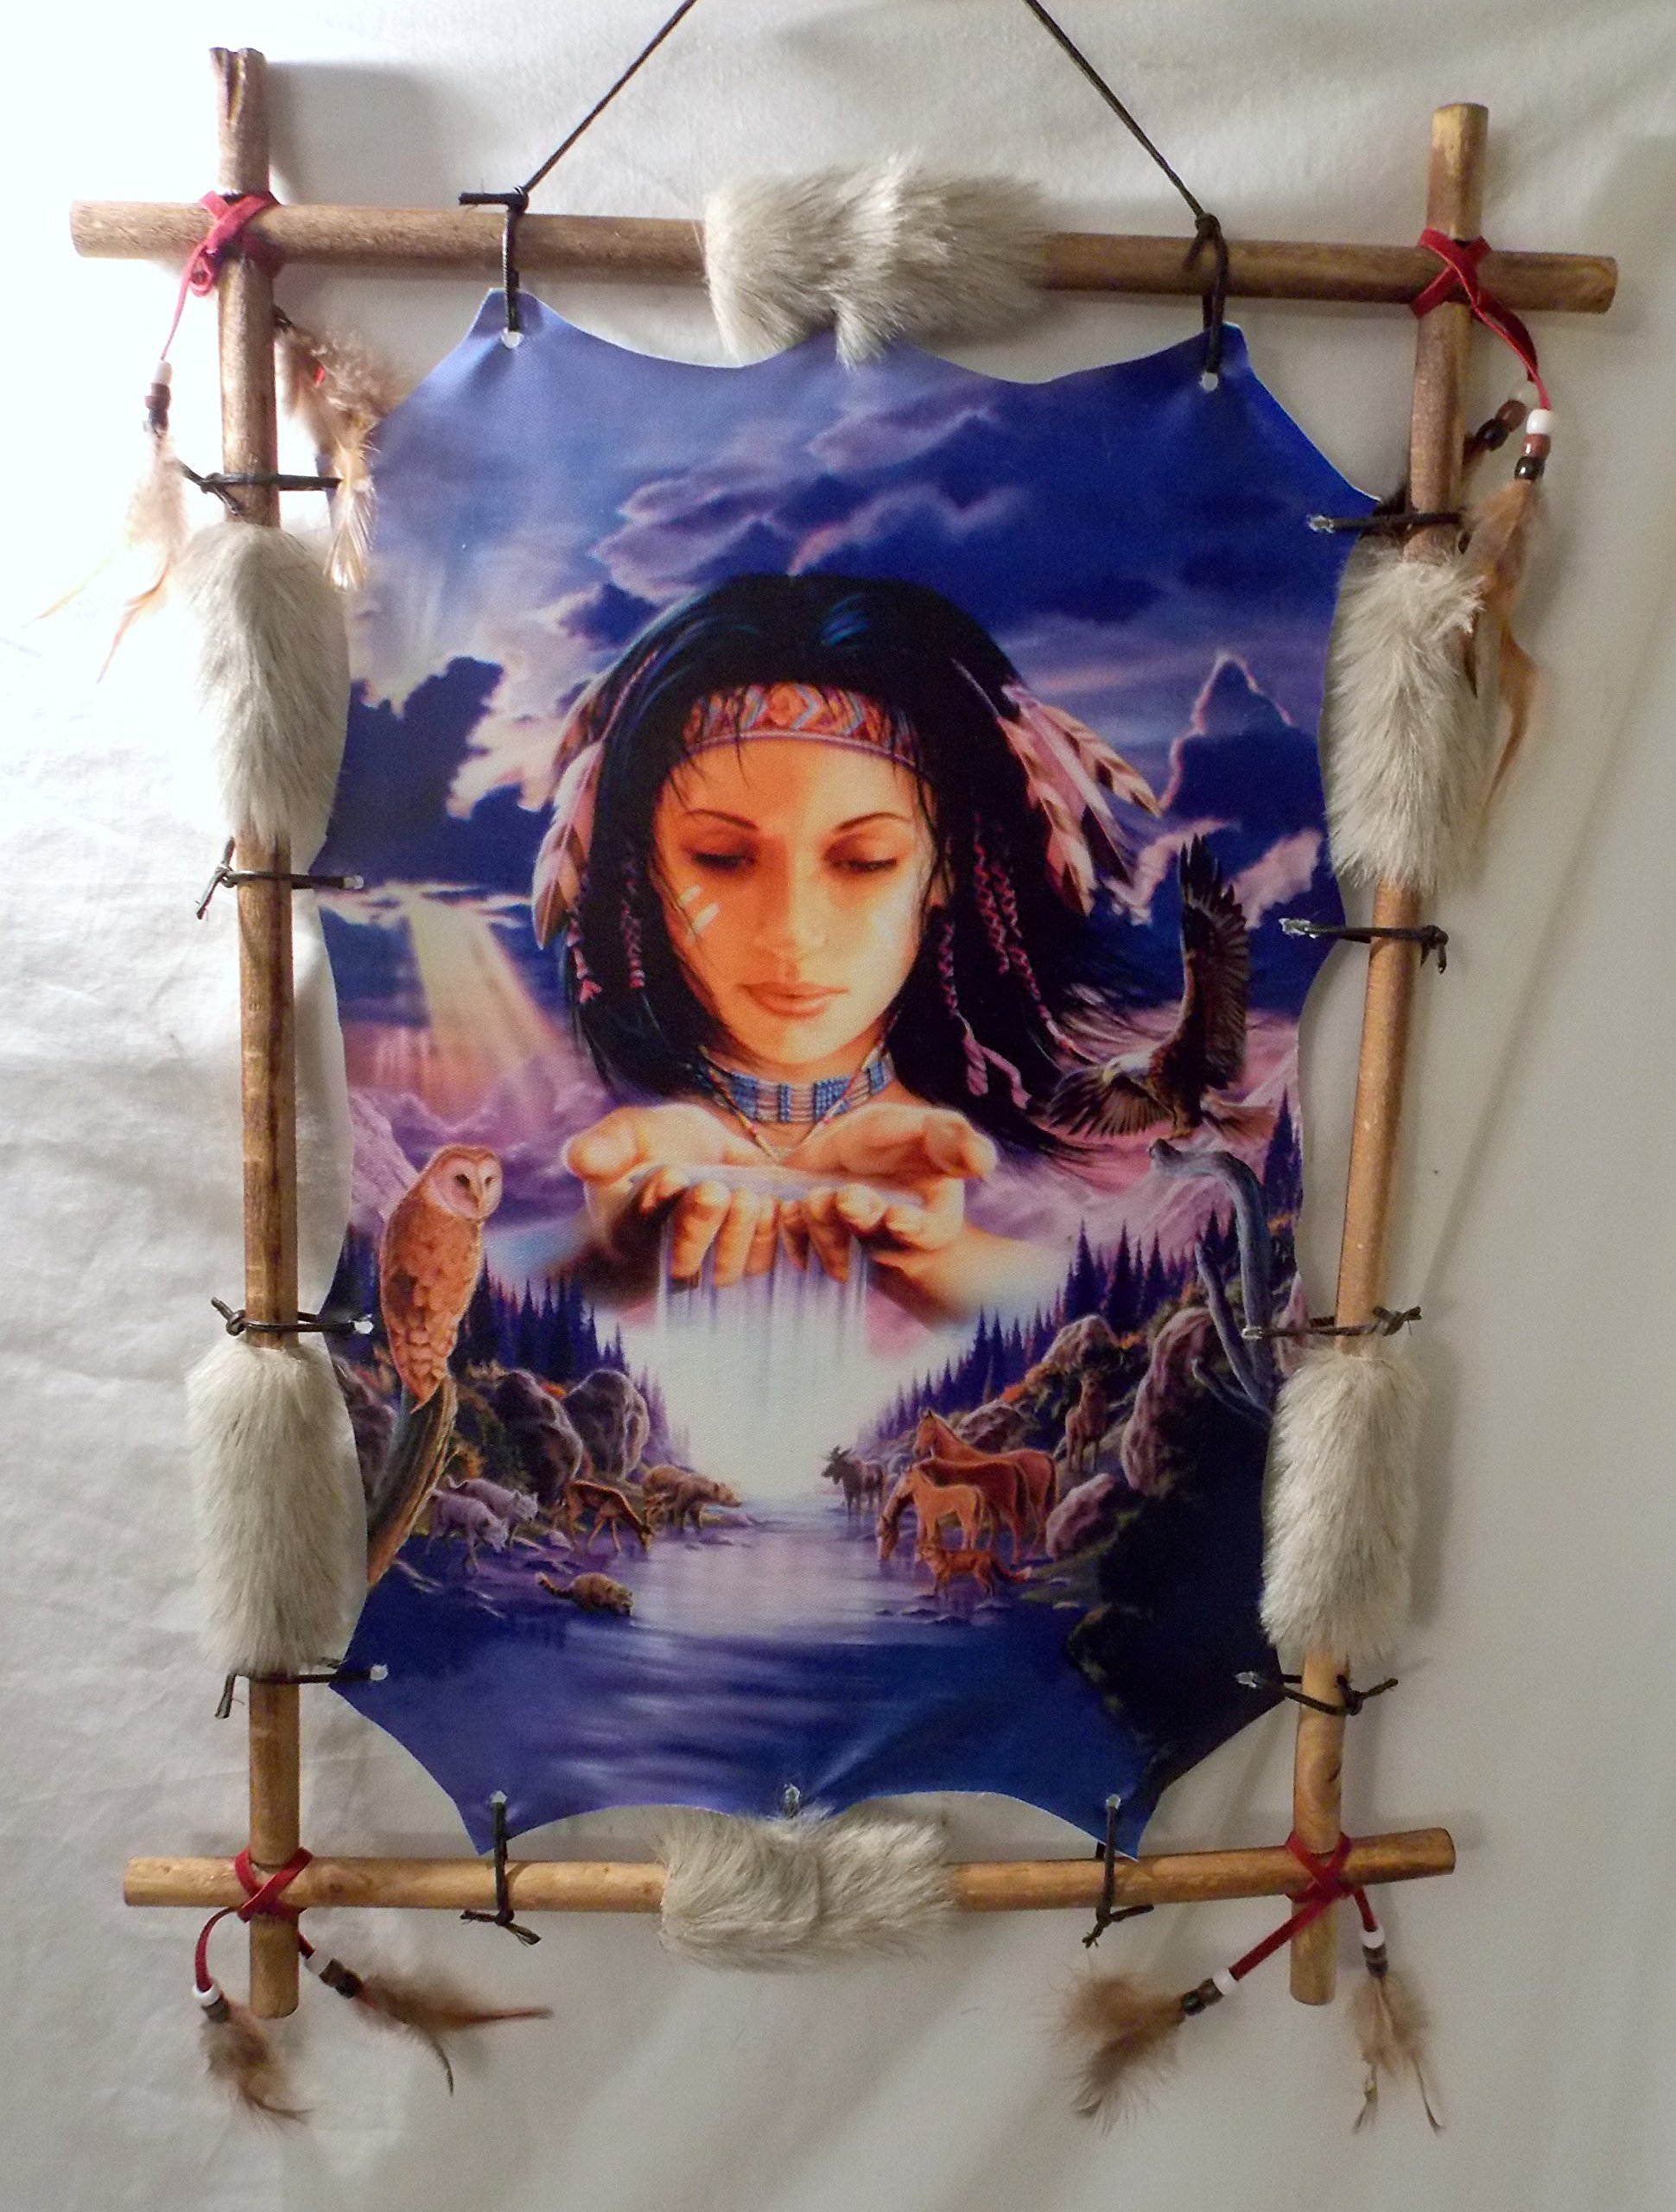 New Indian Girl with Bears, Deers and an Owl in a Picturesque Mountain Background Wood Frame Dream Catcher 22'' x 16''